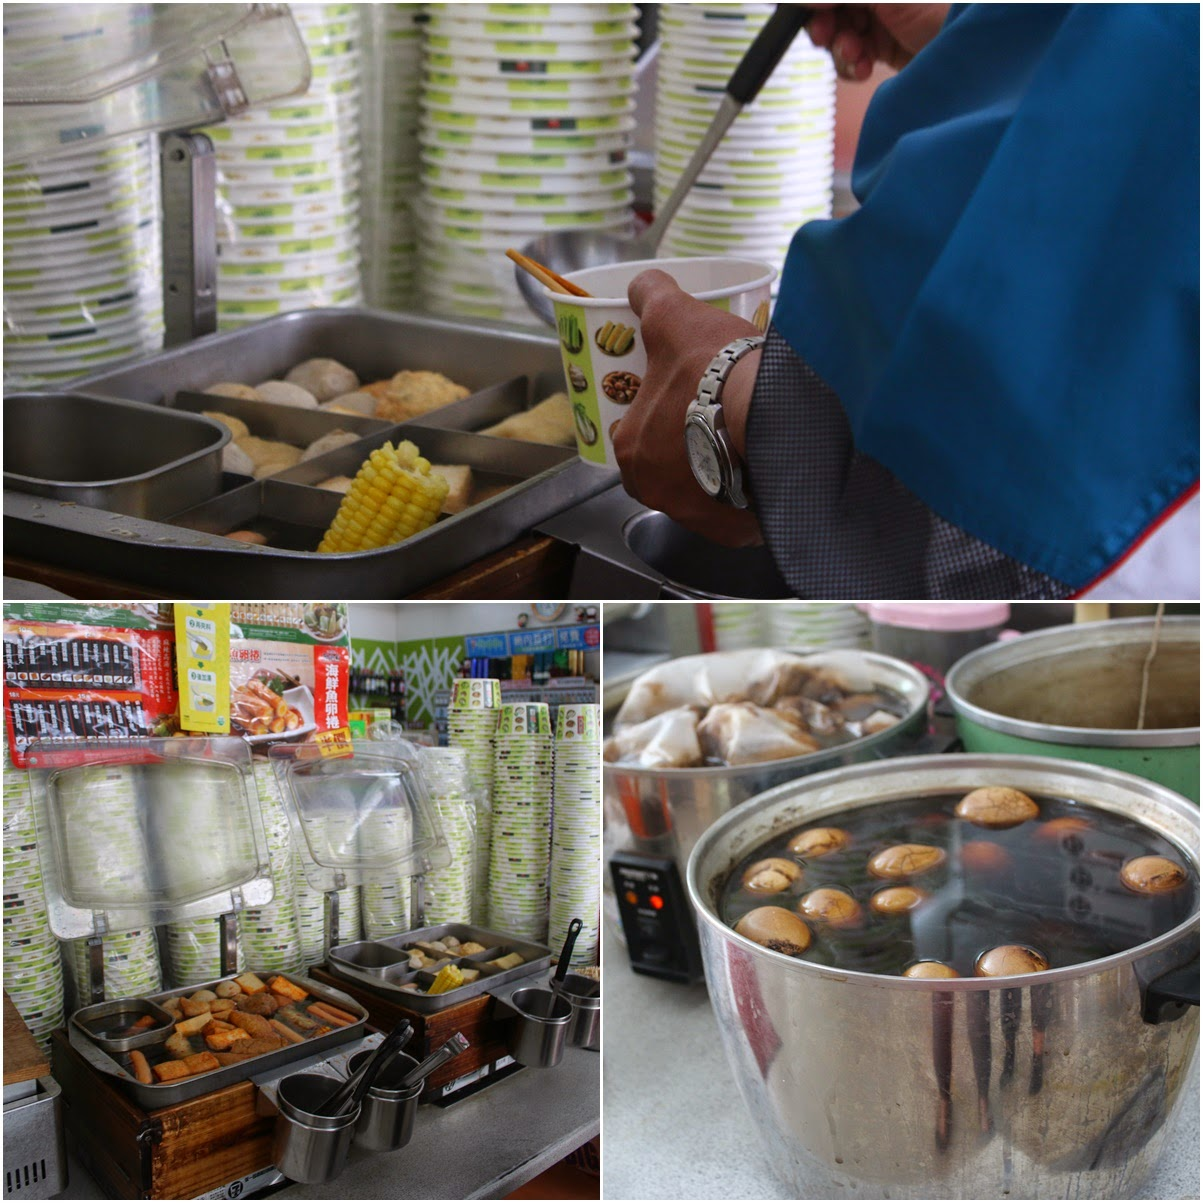 Chinese Tea Marble Eggs and Guan Dong Zhu (Yong Tau Foo) are Taiwanese Specialty Food which can be found in Alisan, Taiwan